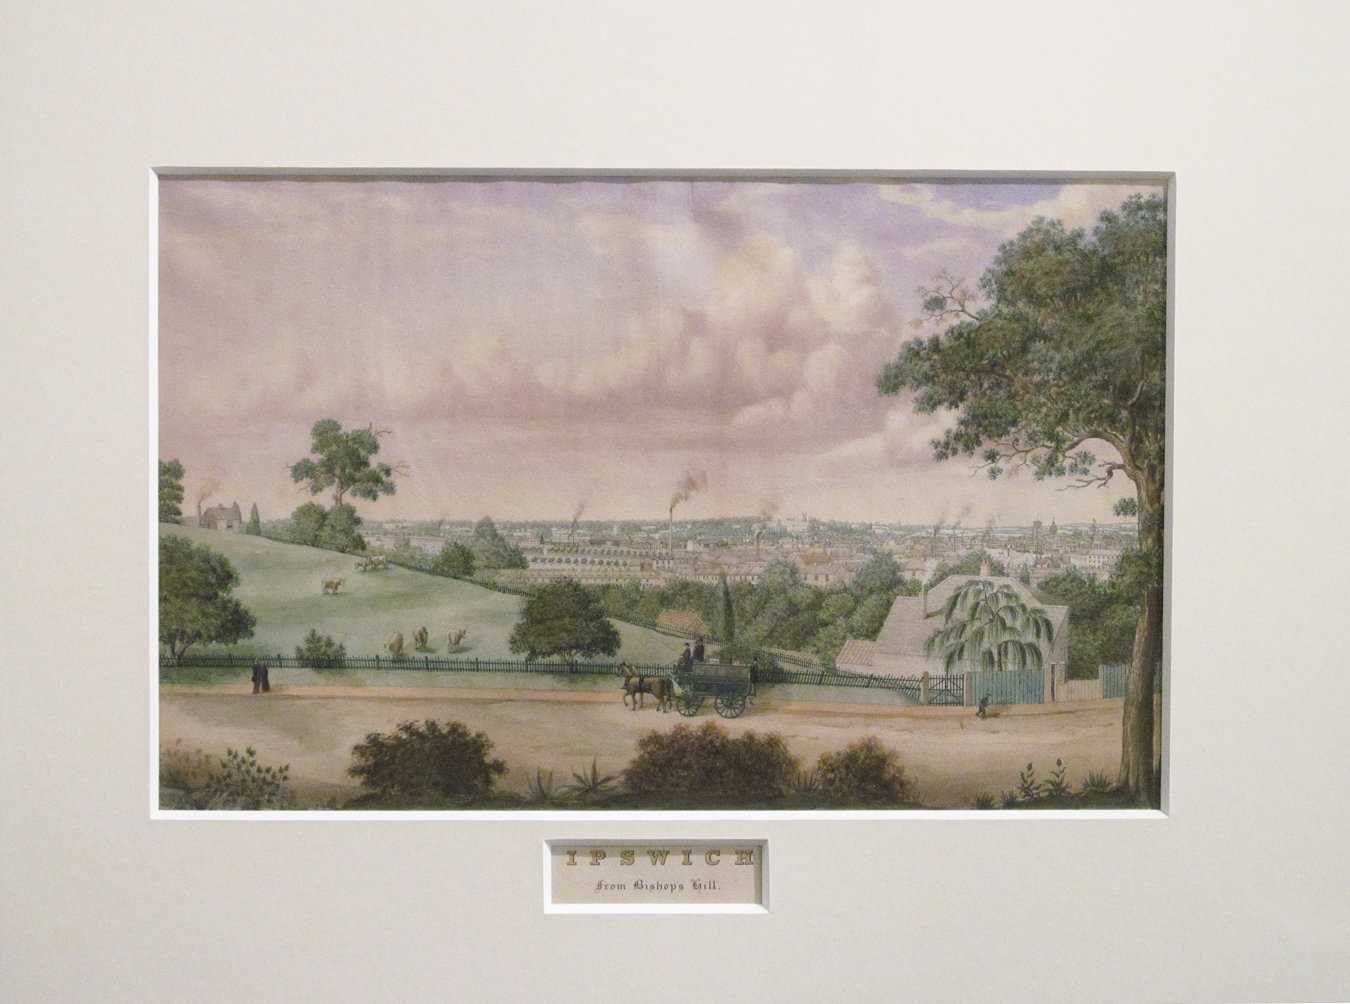 Ipswich from Bishop's Hill  c1865 by  S Clark (1834-1912)